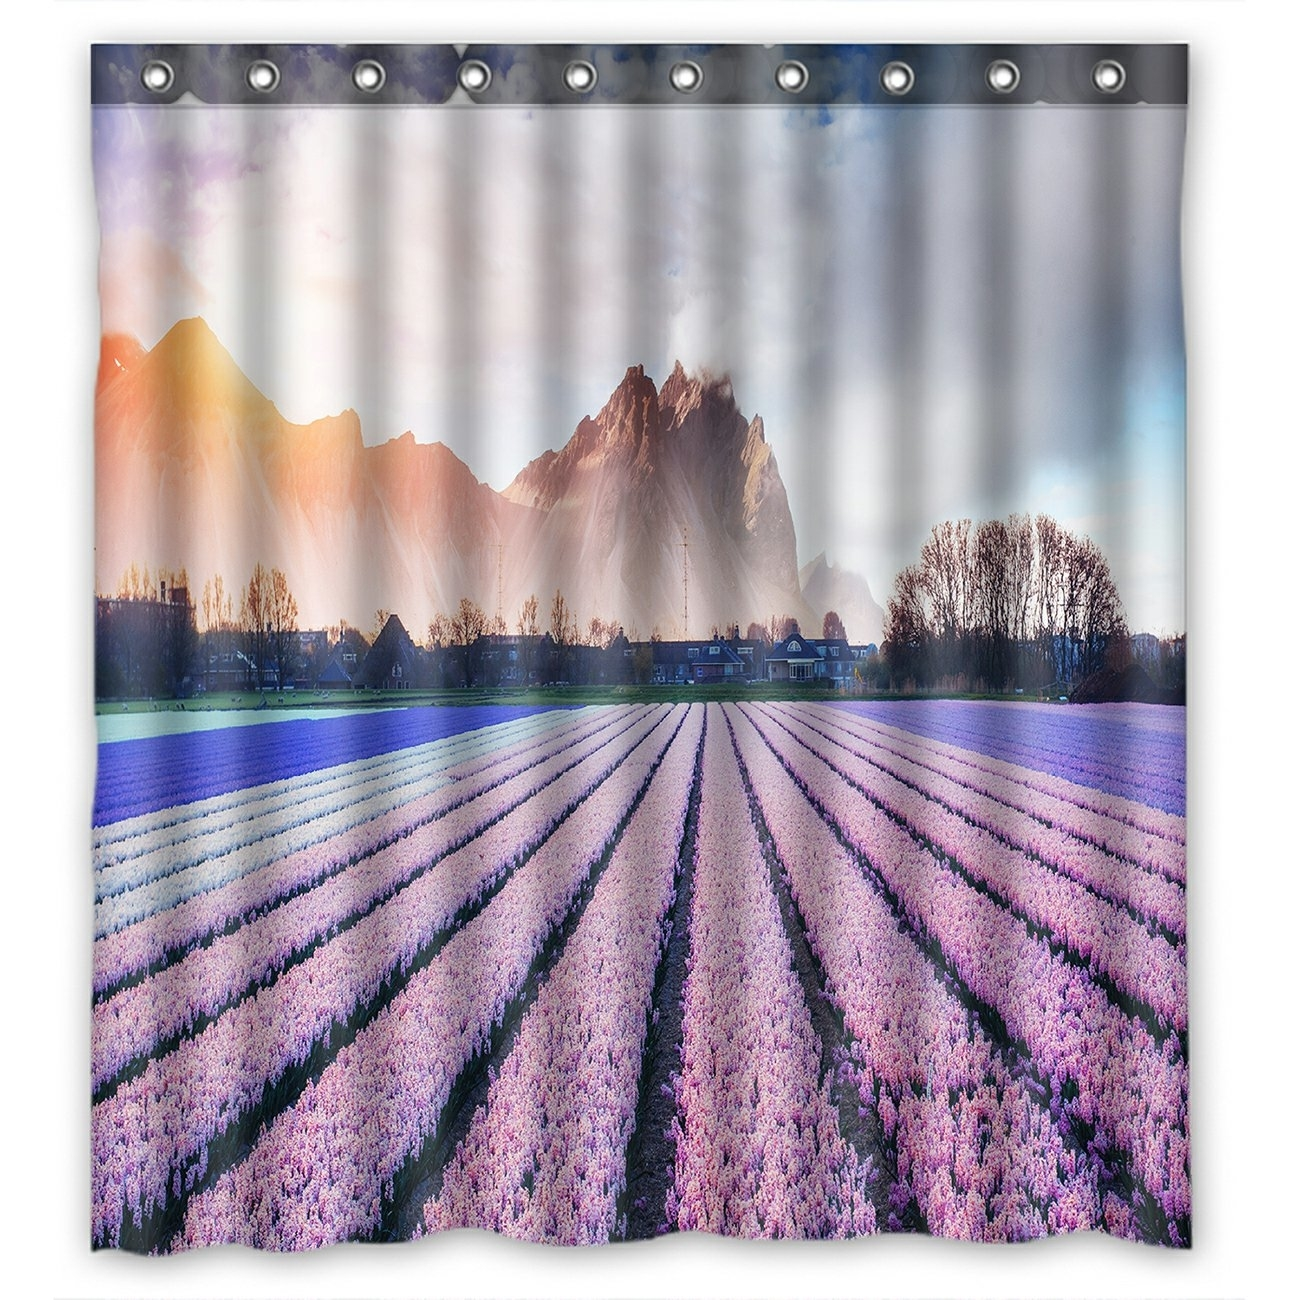 Landscape Scenery Nature Shower Curtain, Beautiful Mountains in the Mist at Sunset Shower Curtain 66x72 inch